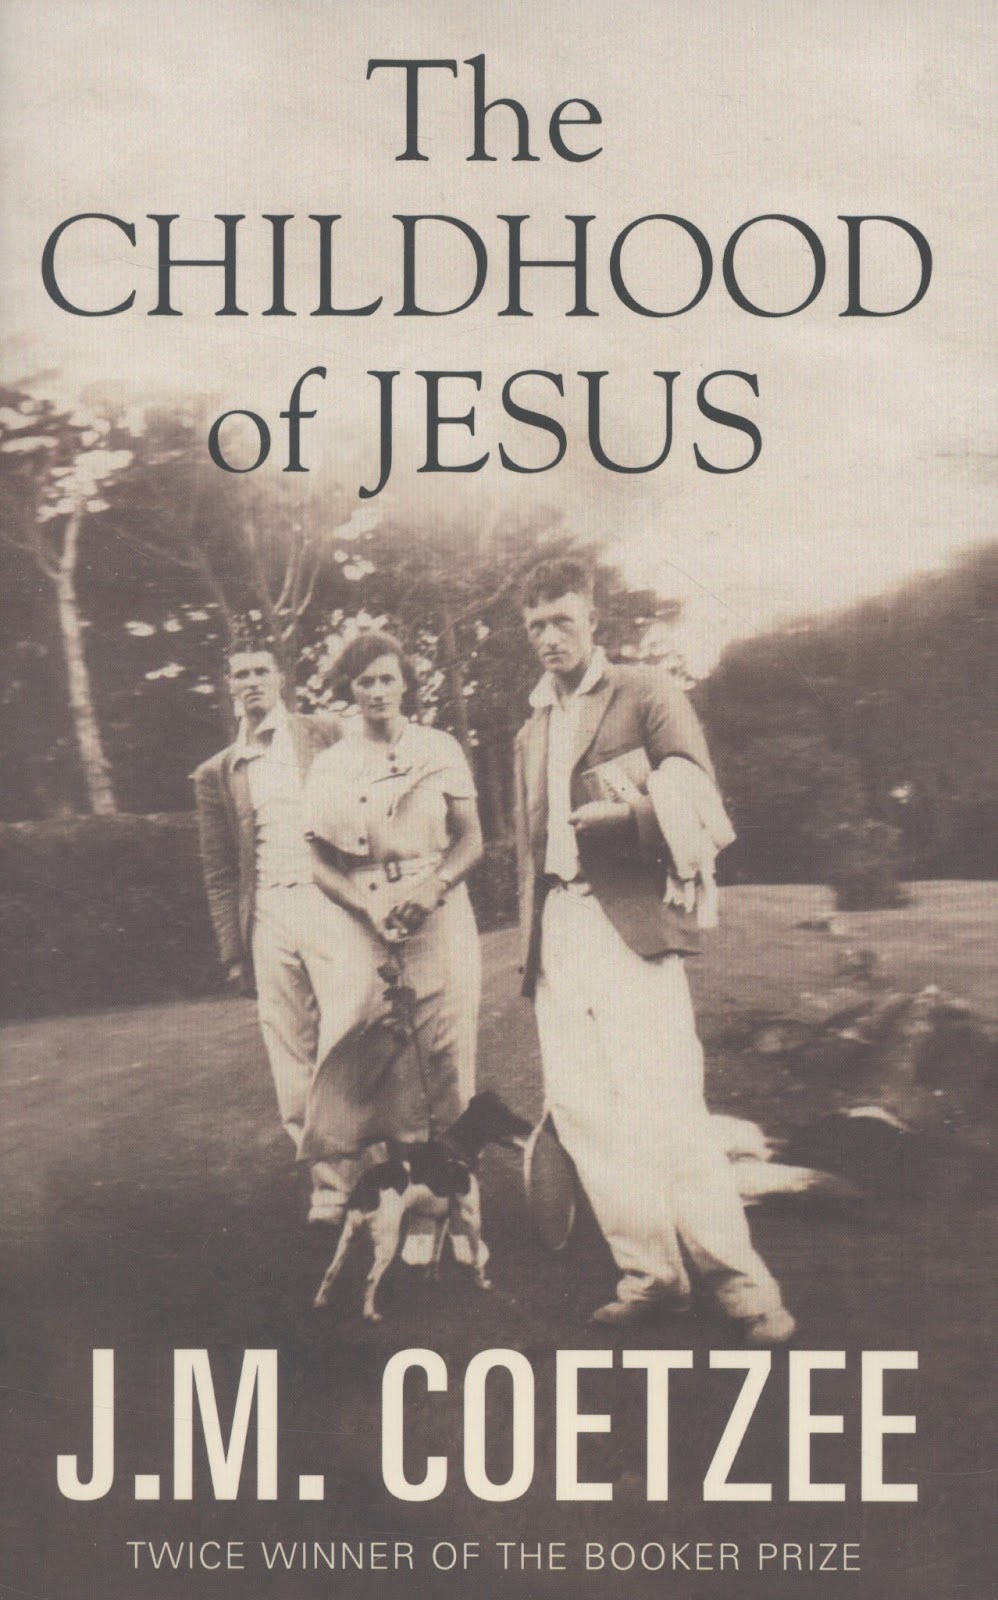 J.M. Coetzee: The Childhood of Jesus